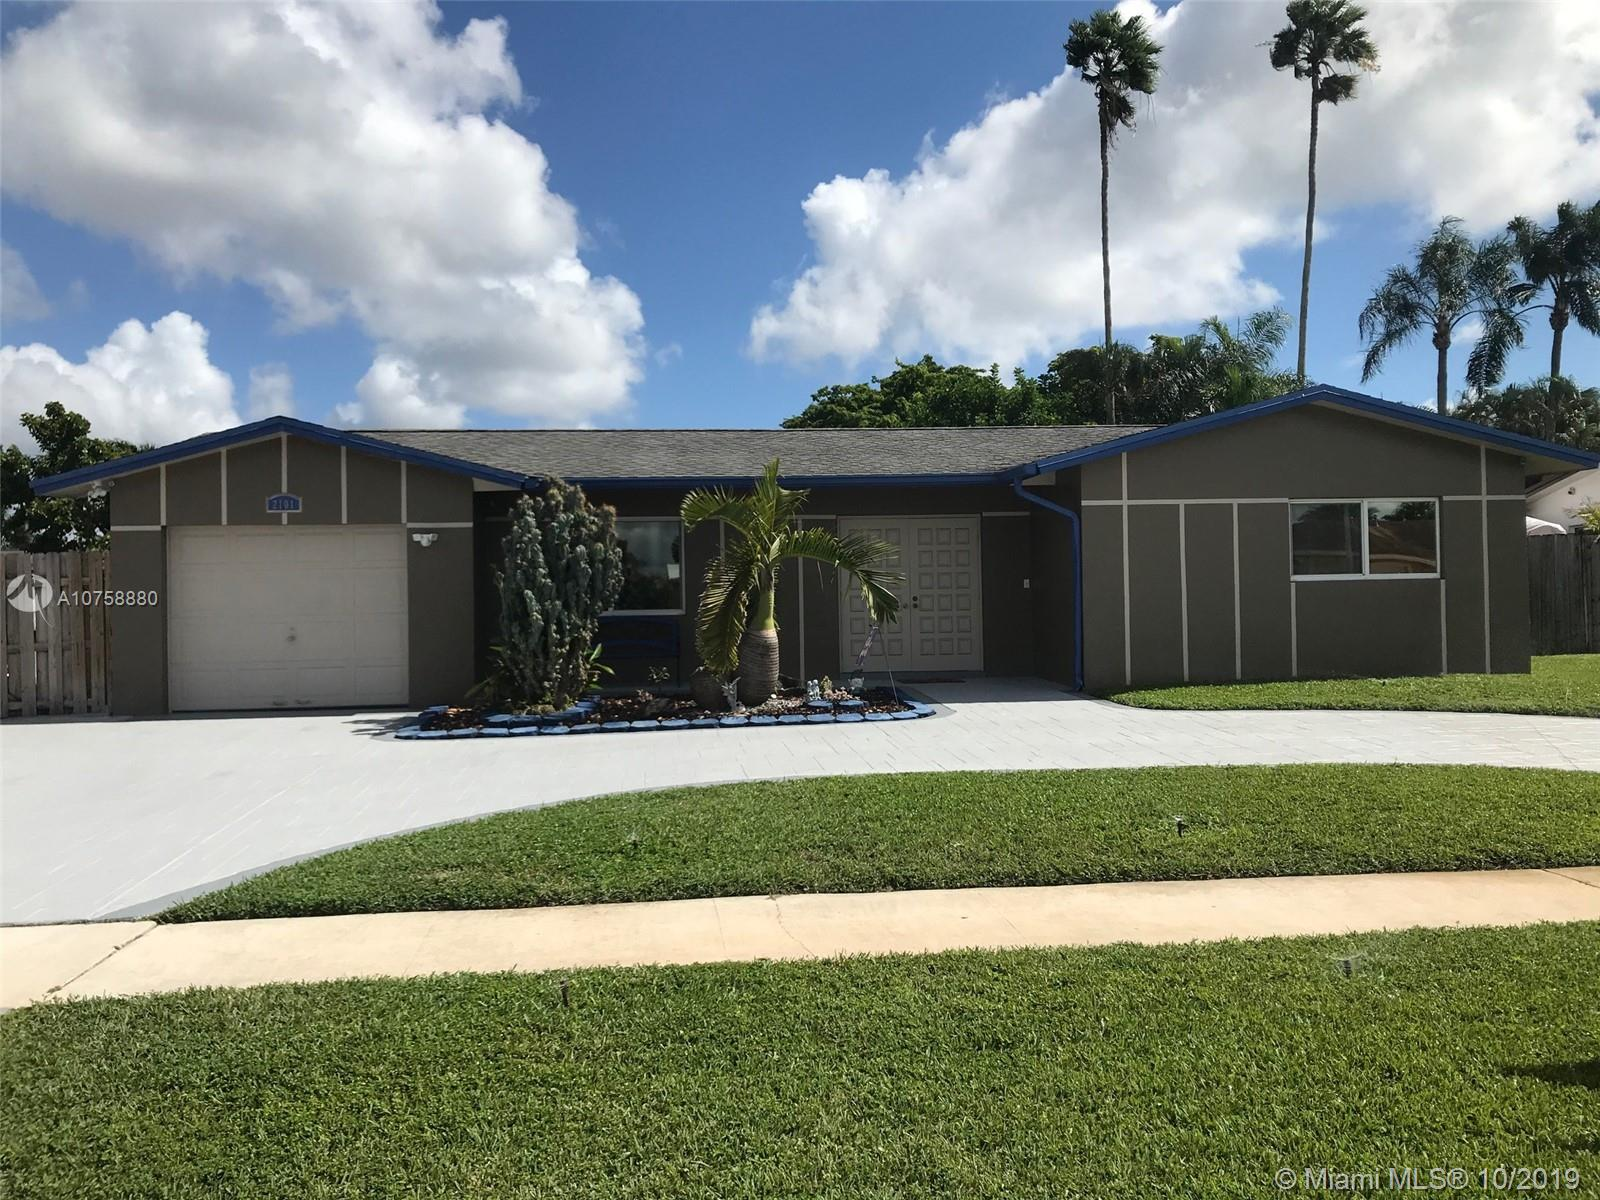 2101 NW 118th Ave, Pembroke Pines, FL 33026